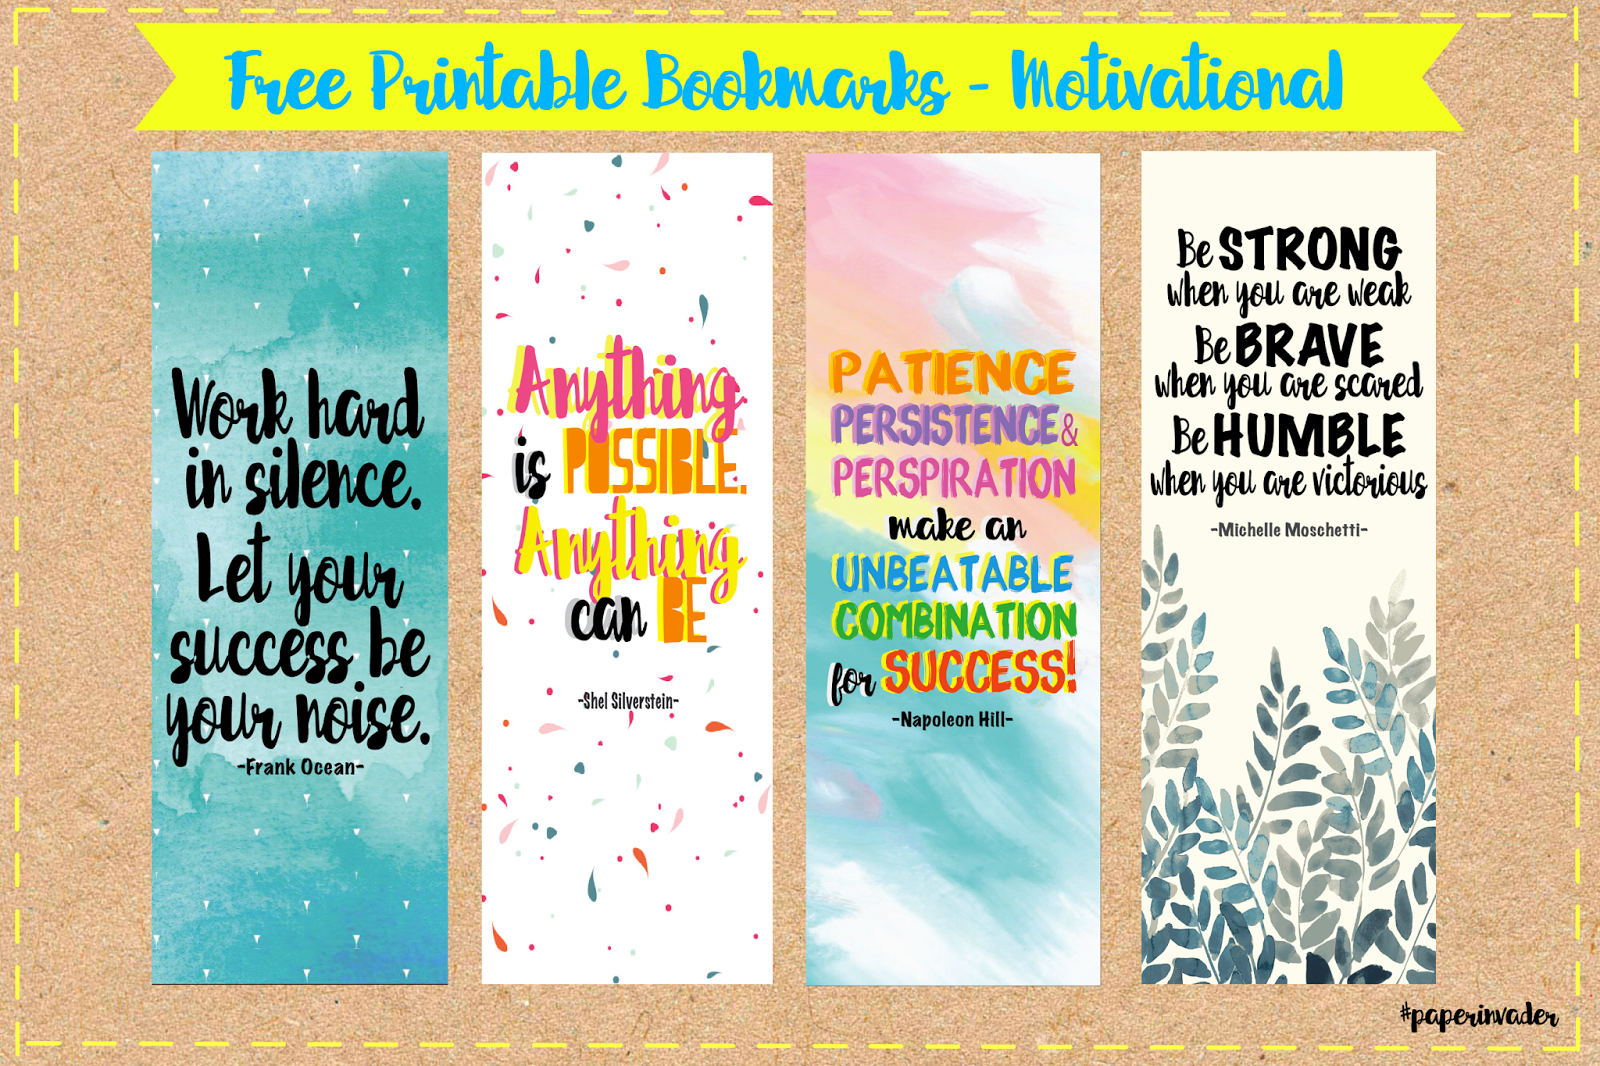 Soft image in bookmarks printable